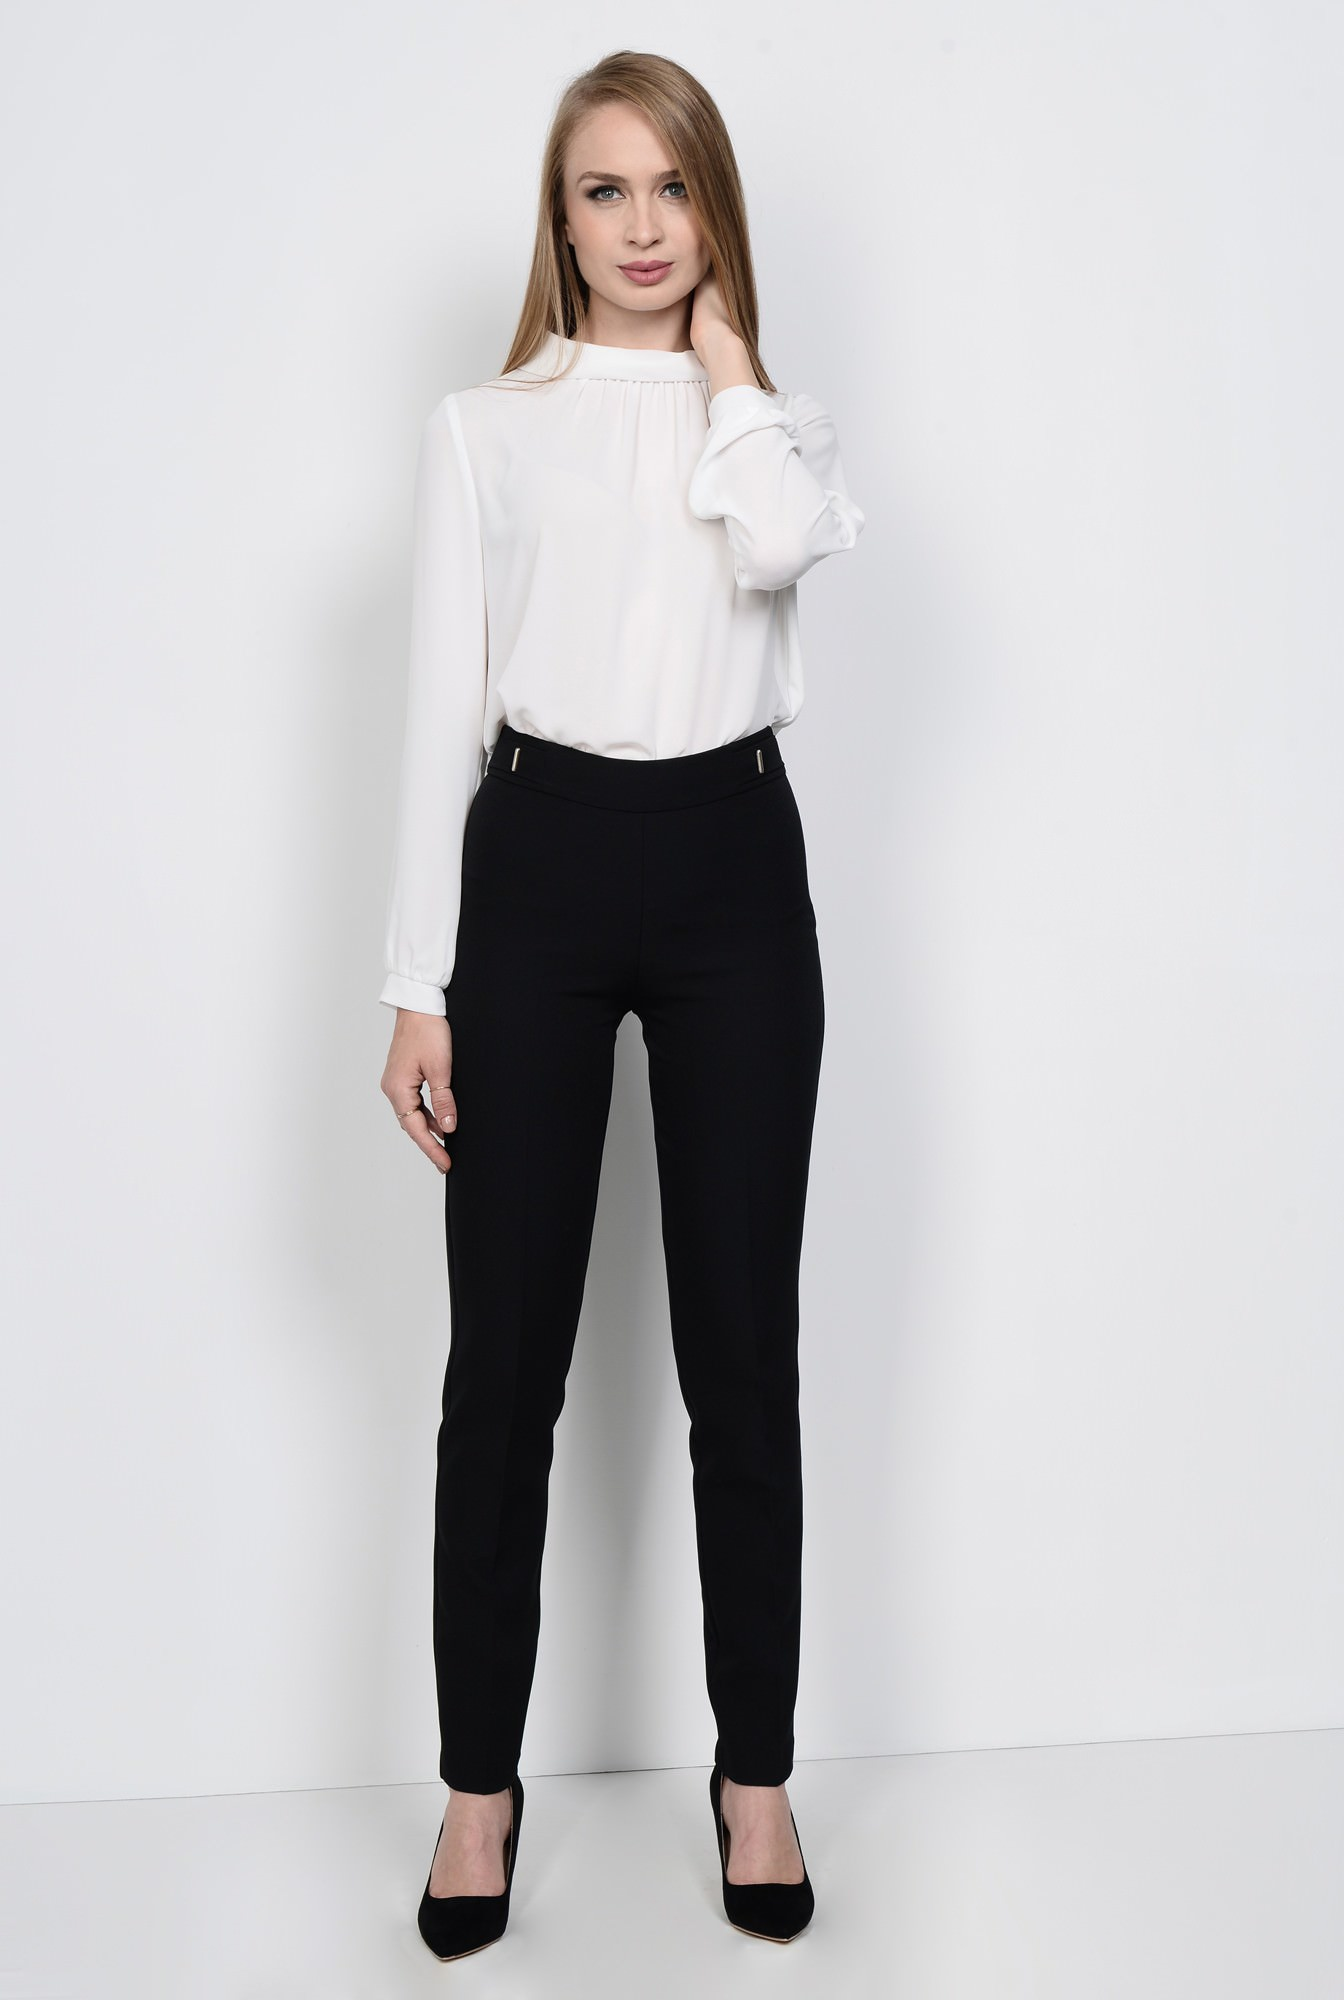 3 - PANTALON OFFICE CONIC PT 120-NEGRU